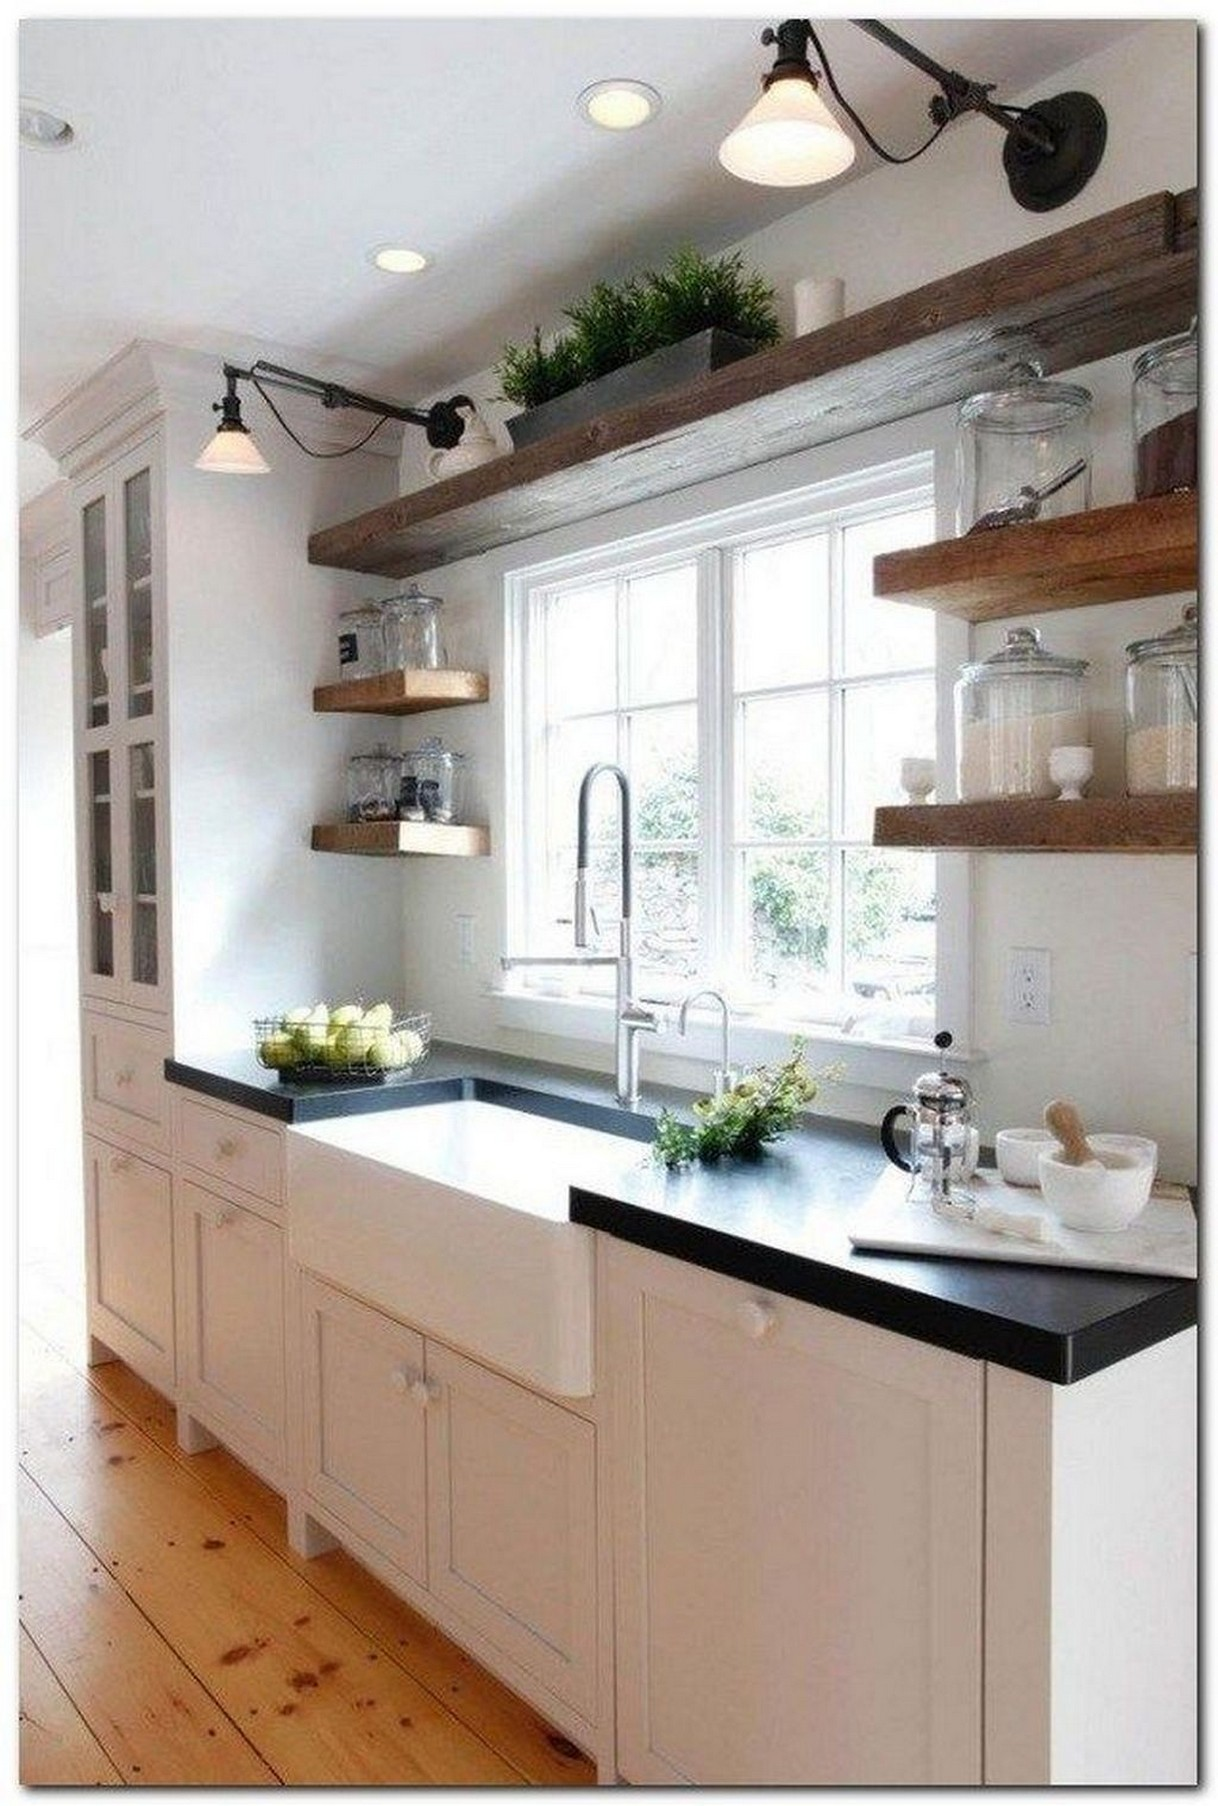 86 Some Small Kitchen Ideas To Help You Do Up Your Kitchen 69